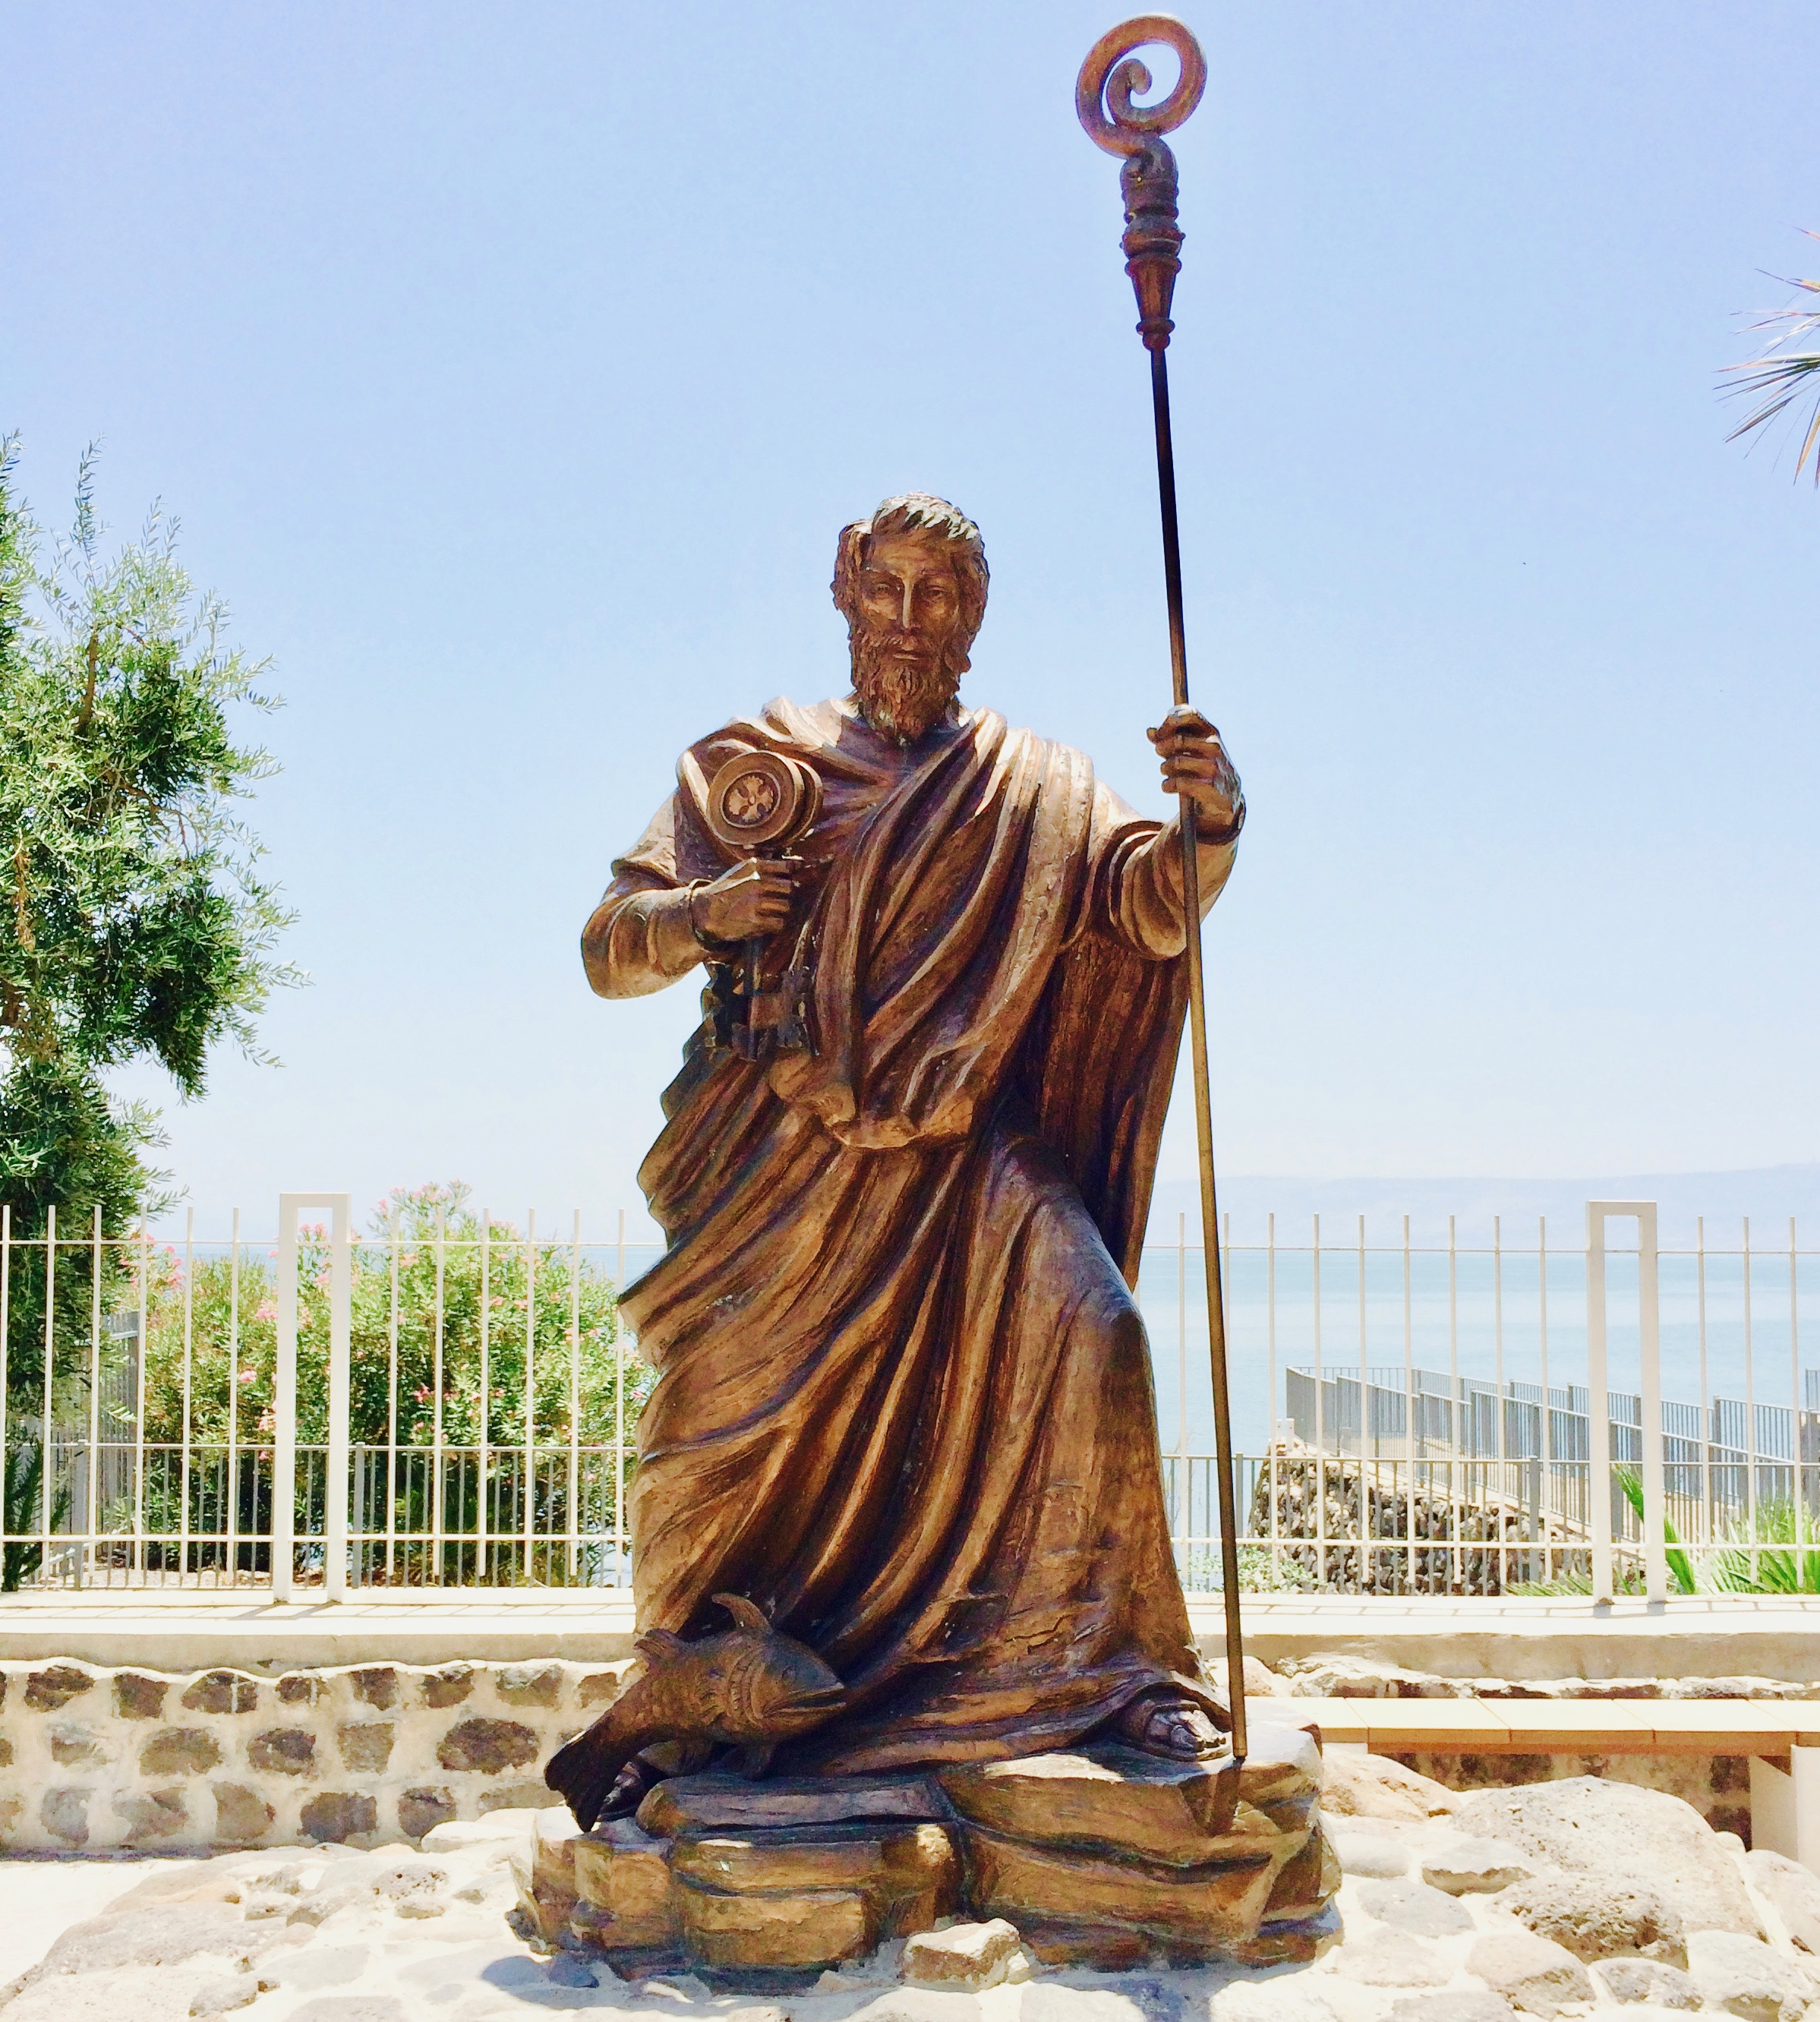 The statue of the Apostle Peter in Capernaum. The Sea of Galilee is in the background. Today I imagine Peter wielding the rod in his hand to protect the church from bad influences, and then using it as a staff to lead the flock in the right way.